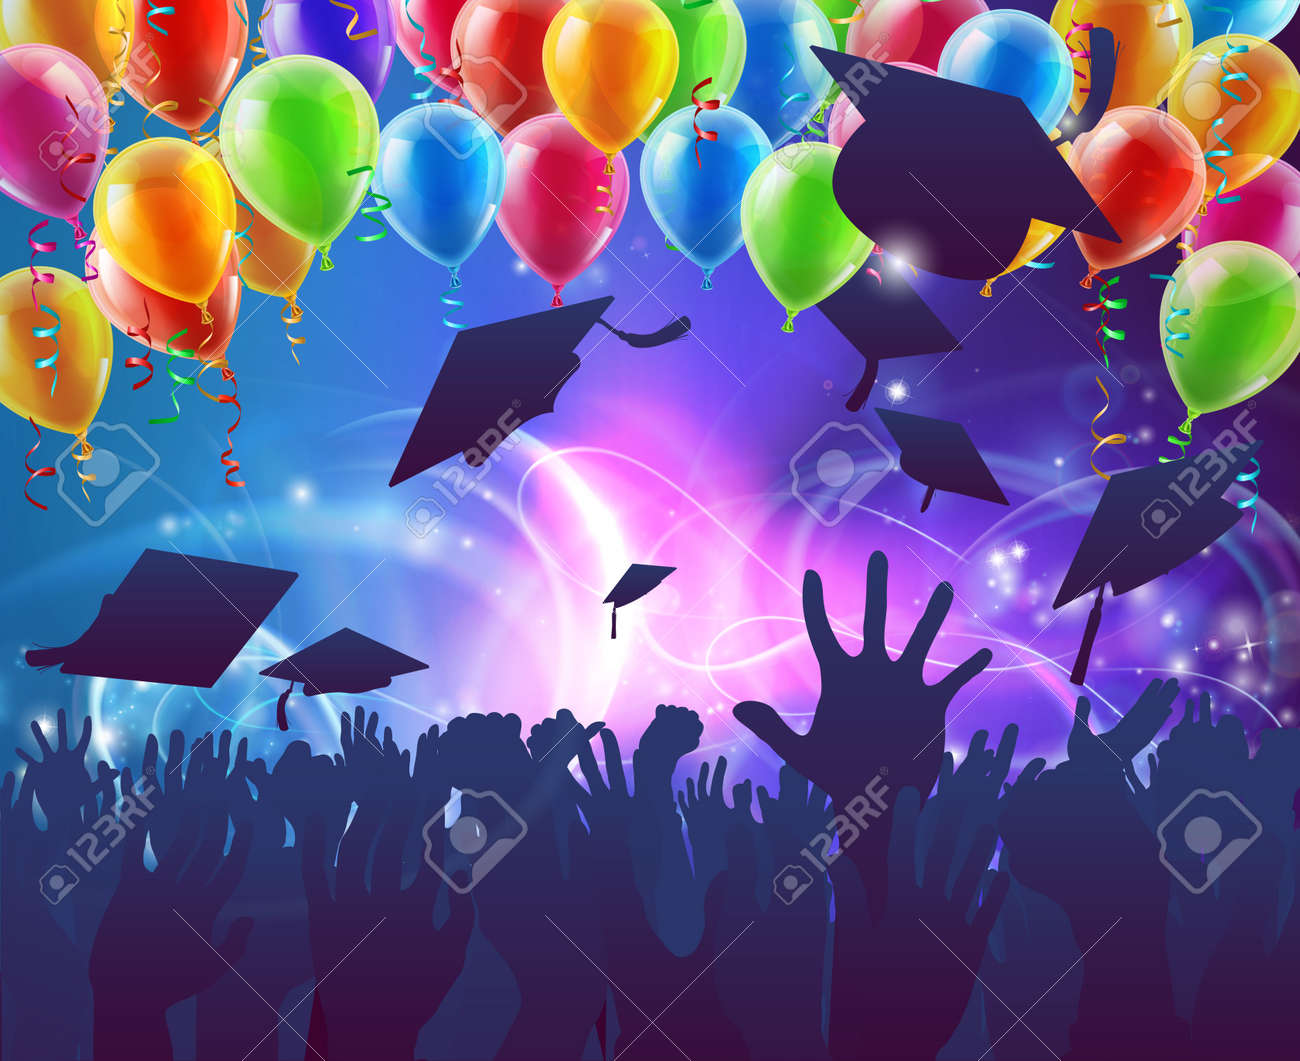 Graduation convocation crowd concept of student hands in silhouette throwing their mortar board caps celebrating with abstract background and balloons - 51882874